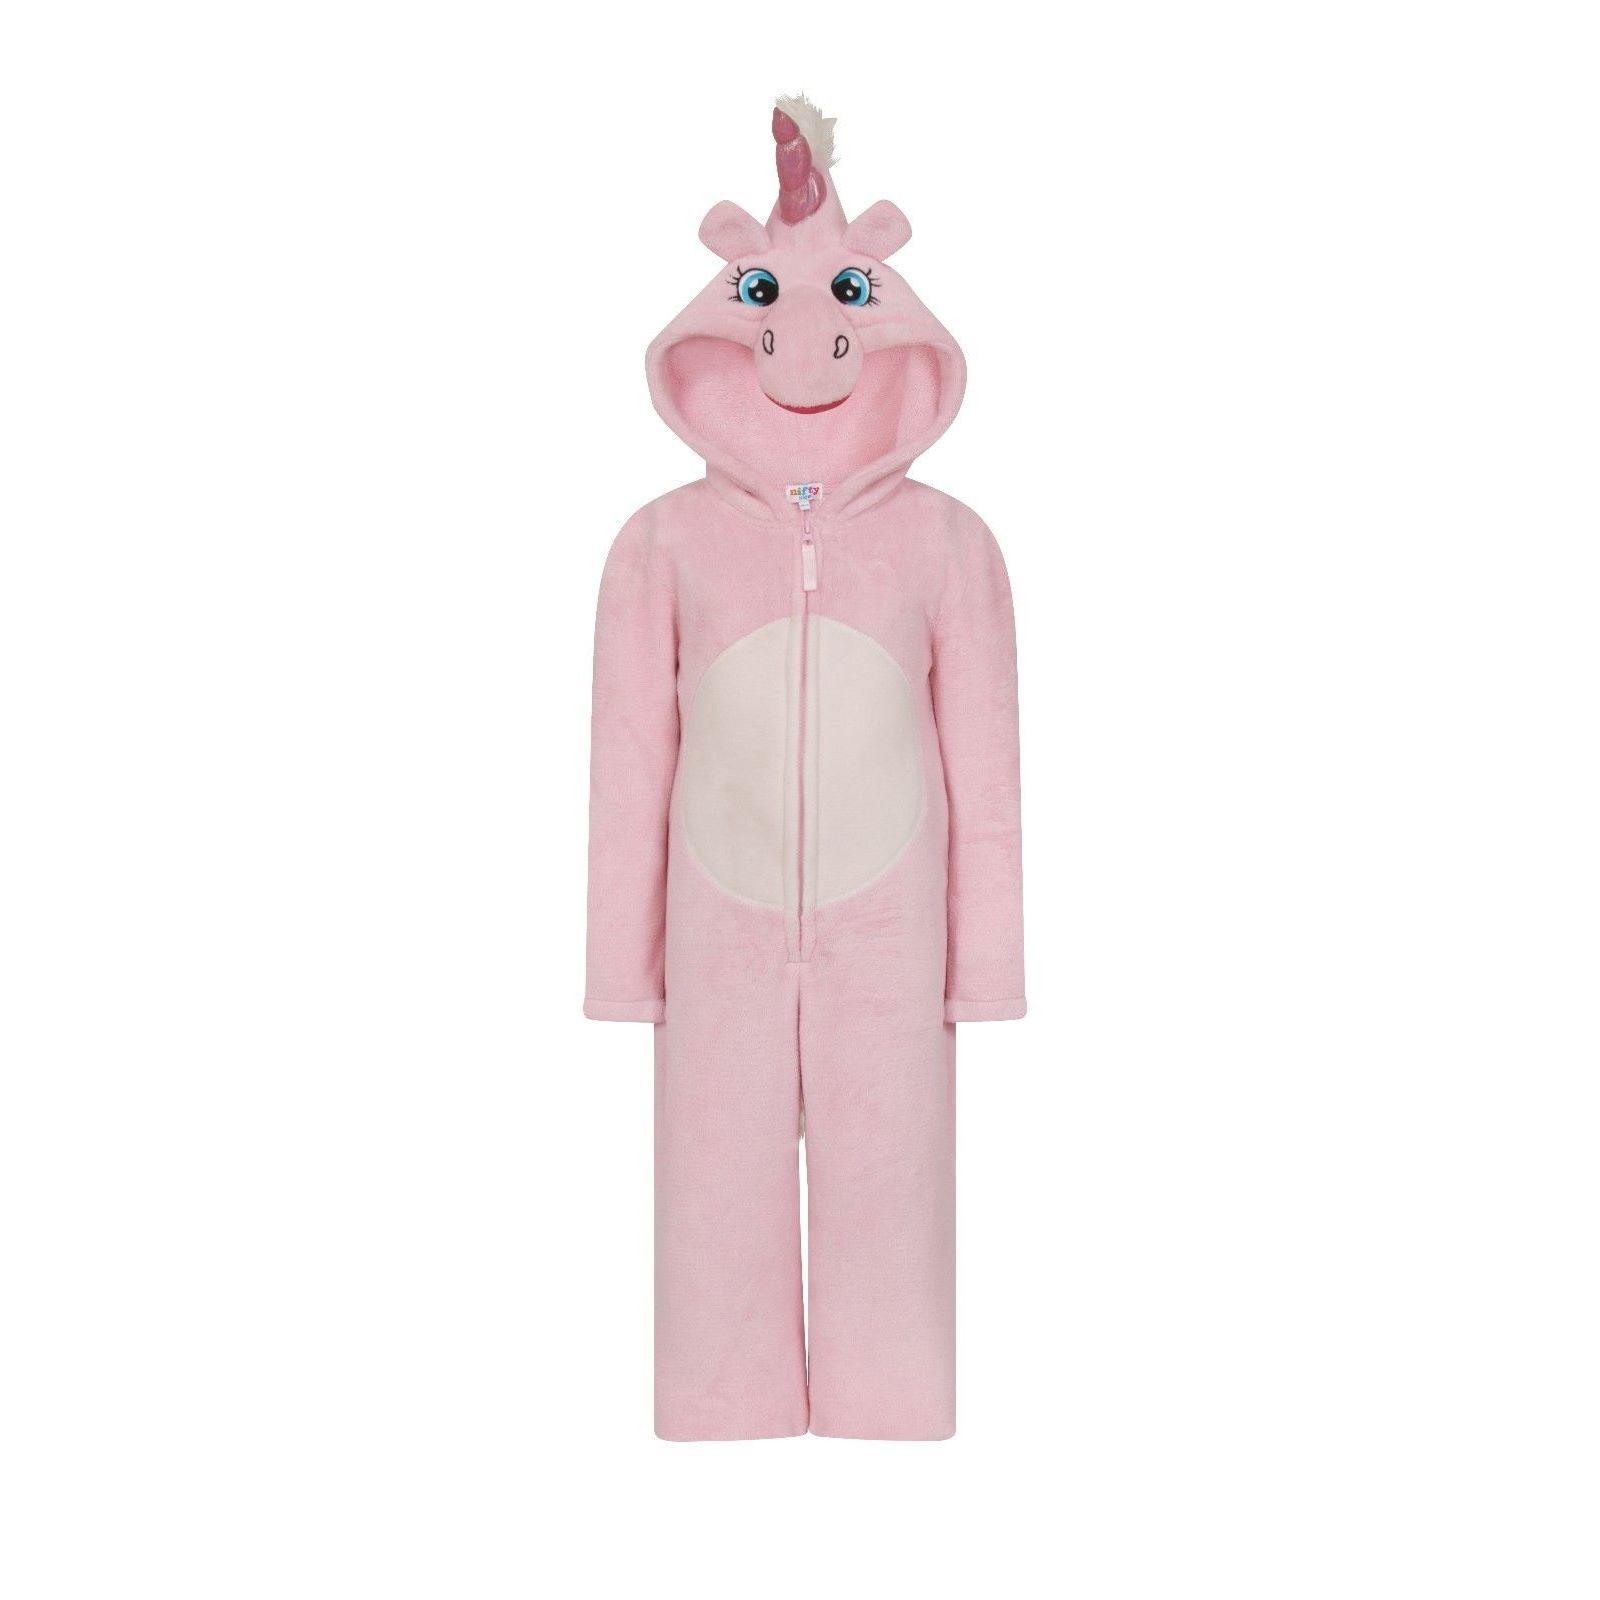 Nifty Kids Unicorn Fleece Onesie - Pink